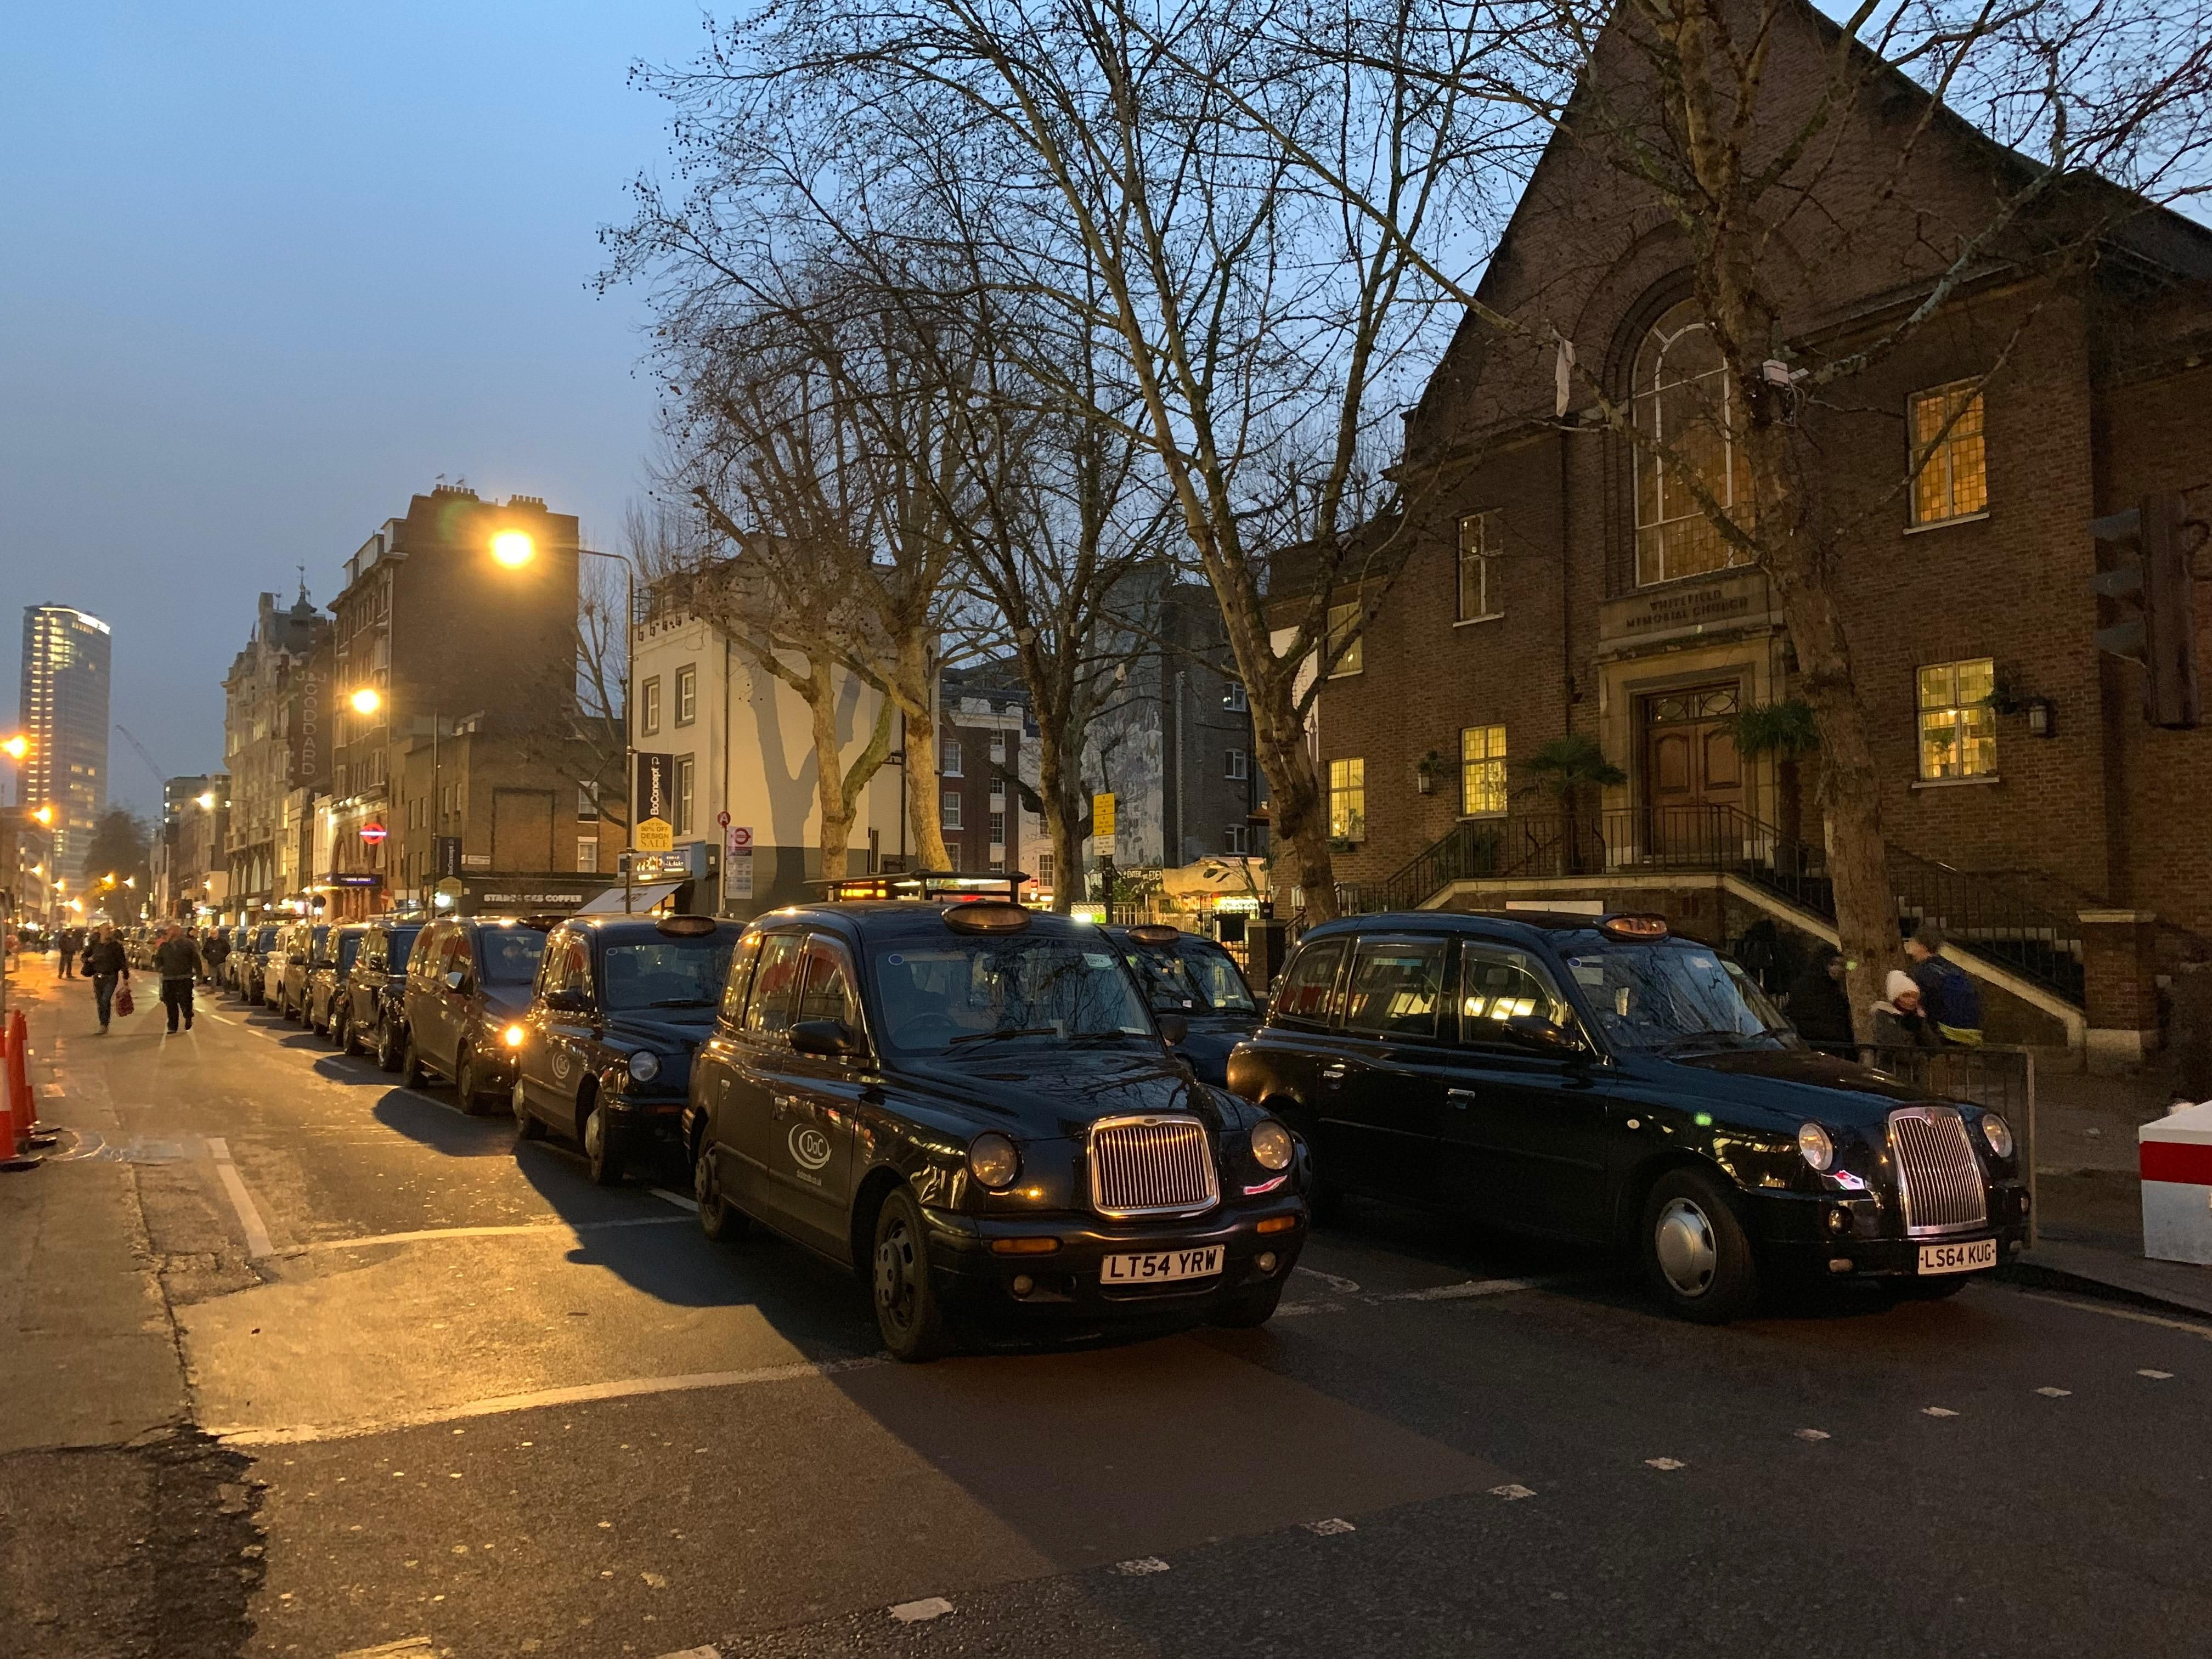 View of a group of London Black Cabs stationary on a street at dusk